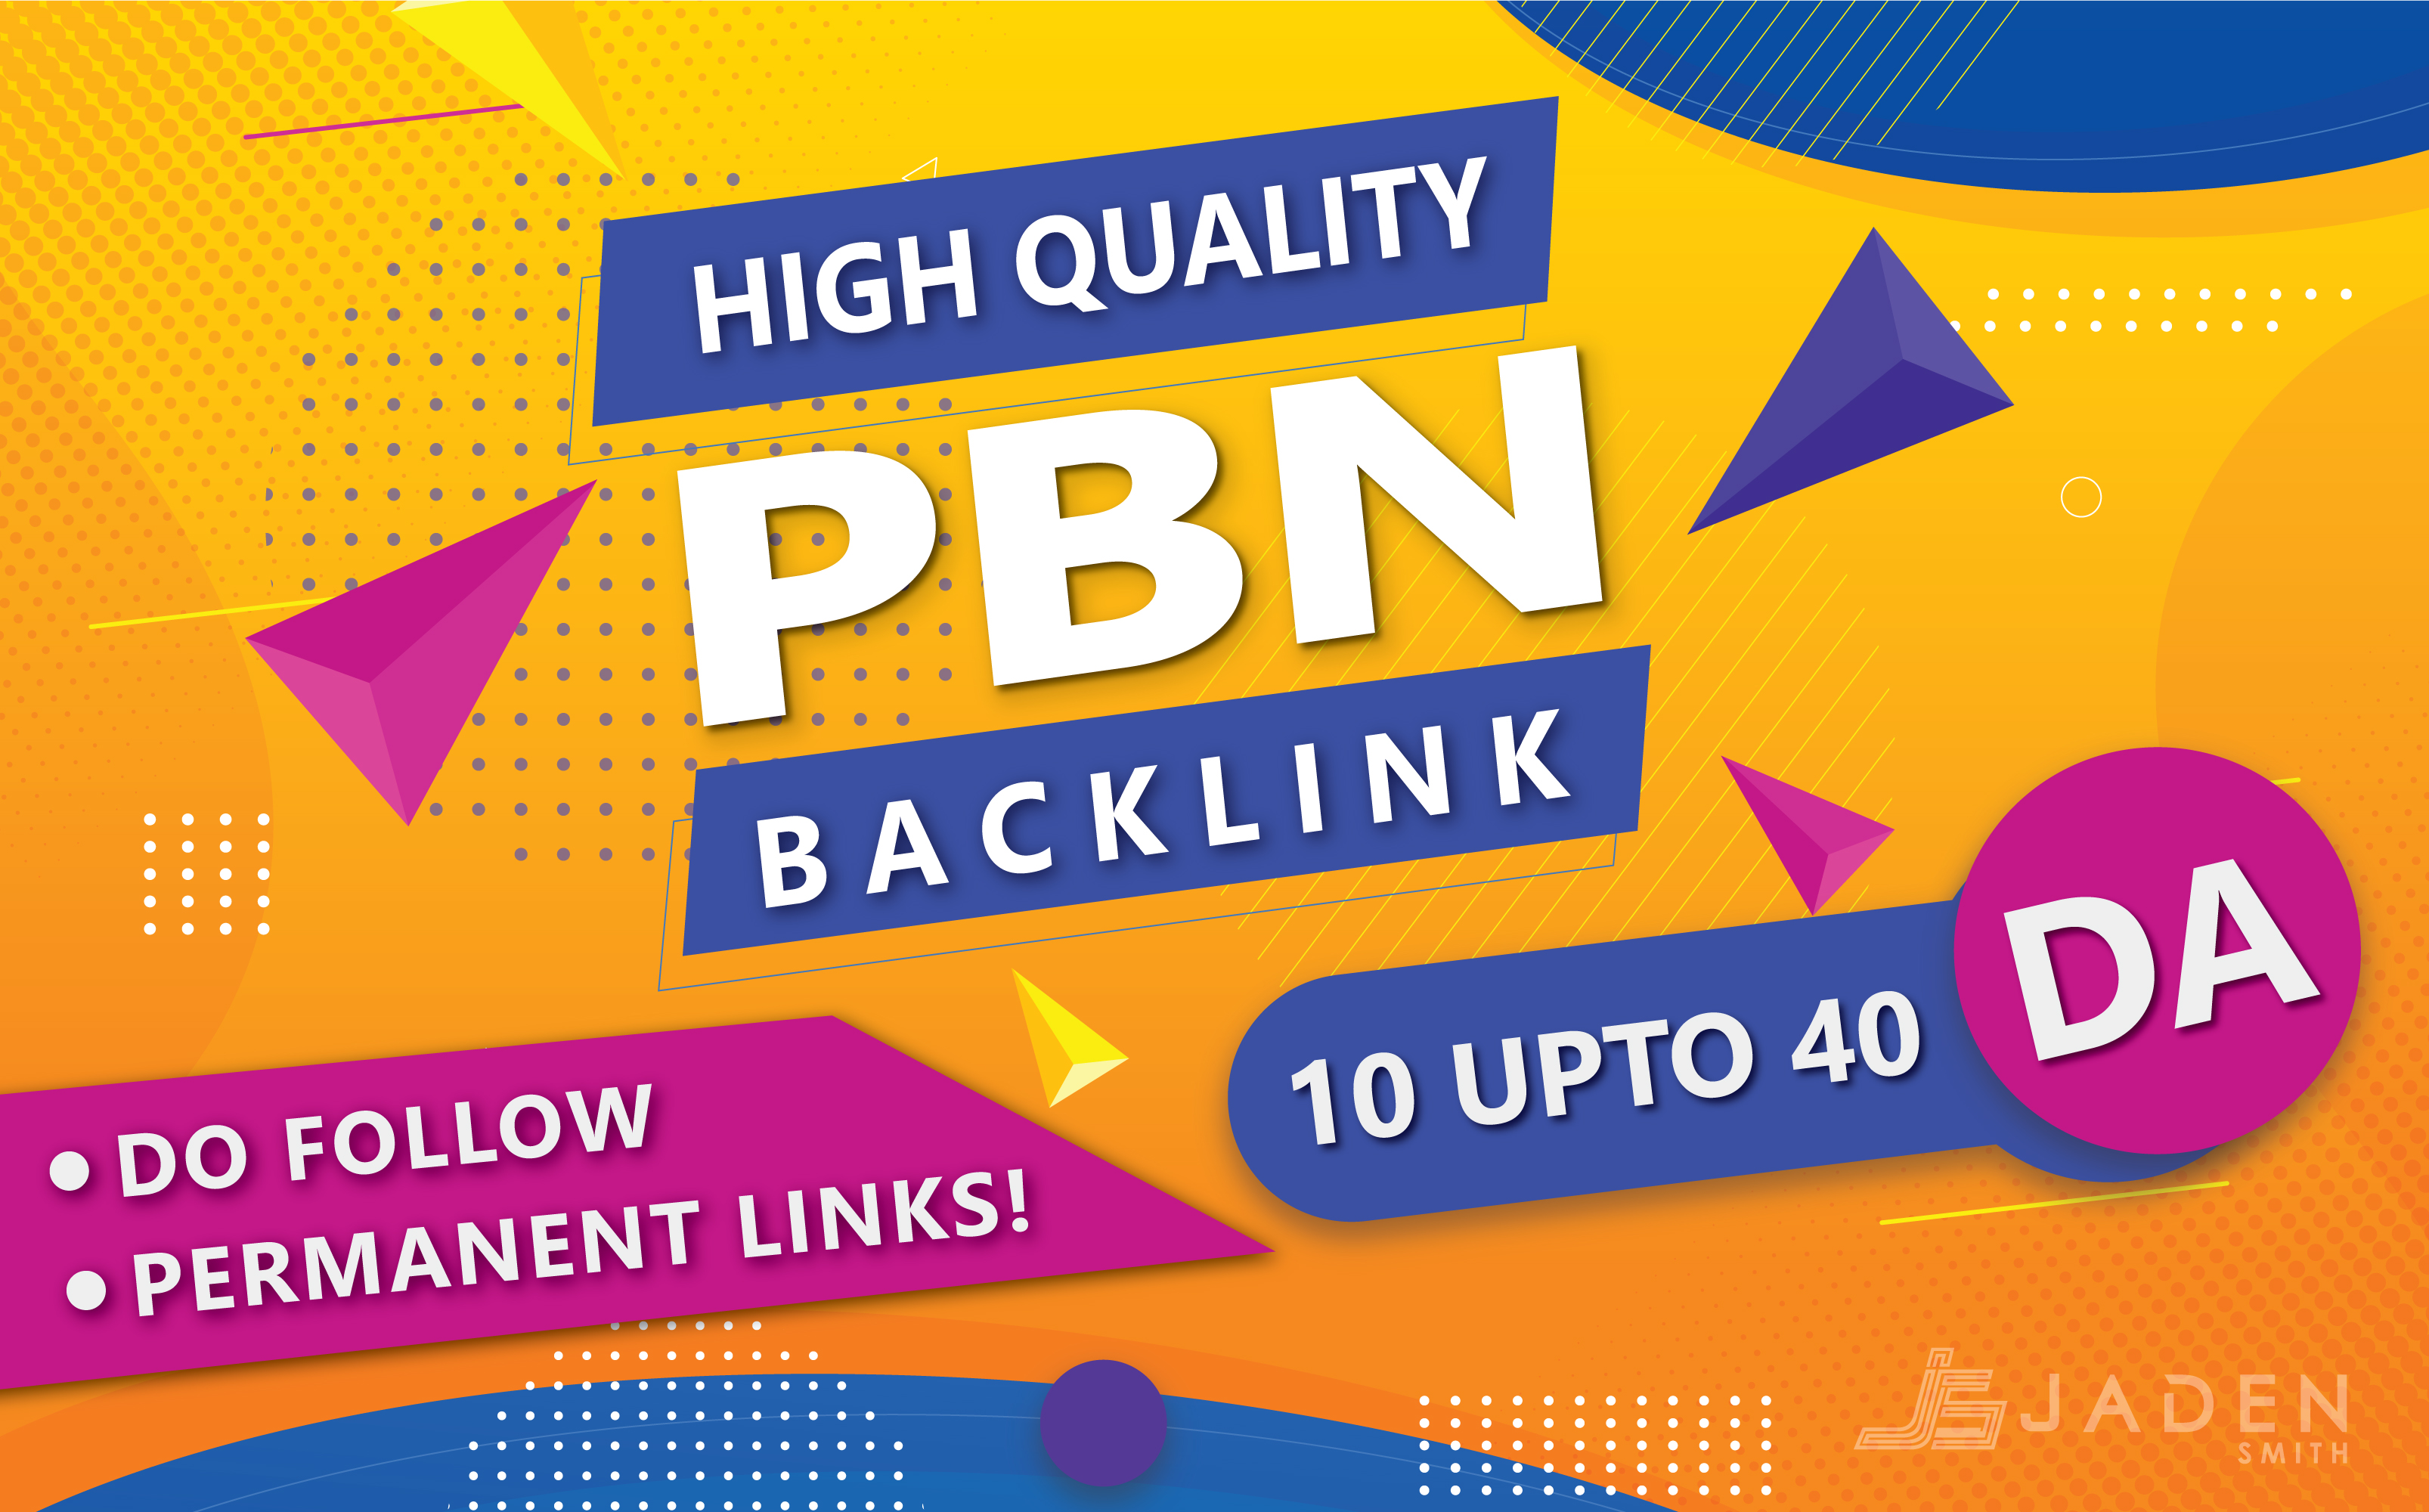 Boost your Site with DA 10 UPTO 40 DO FOLLOW 50 PBN Backlinks